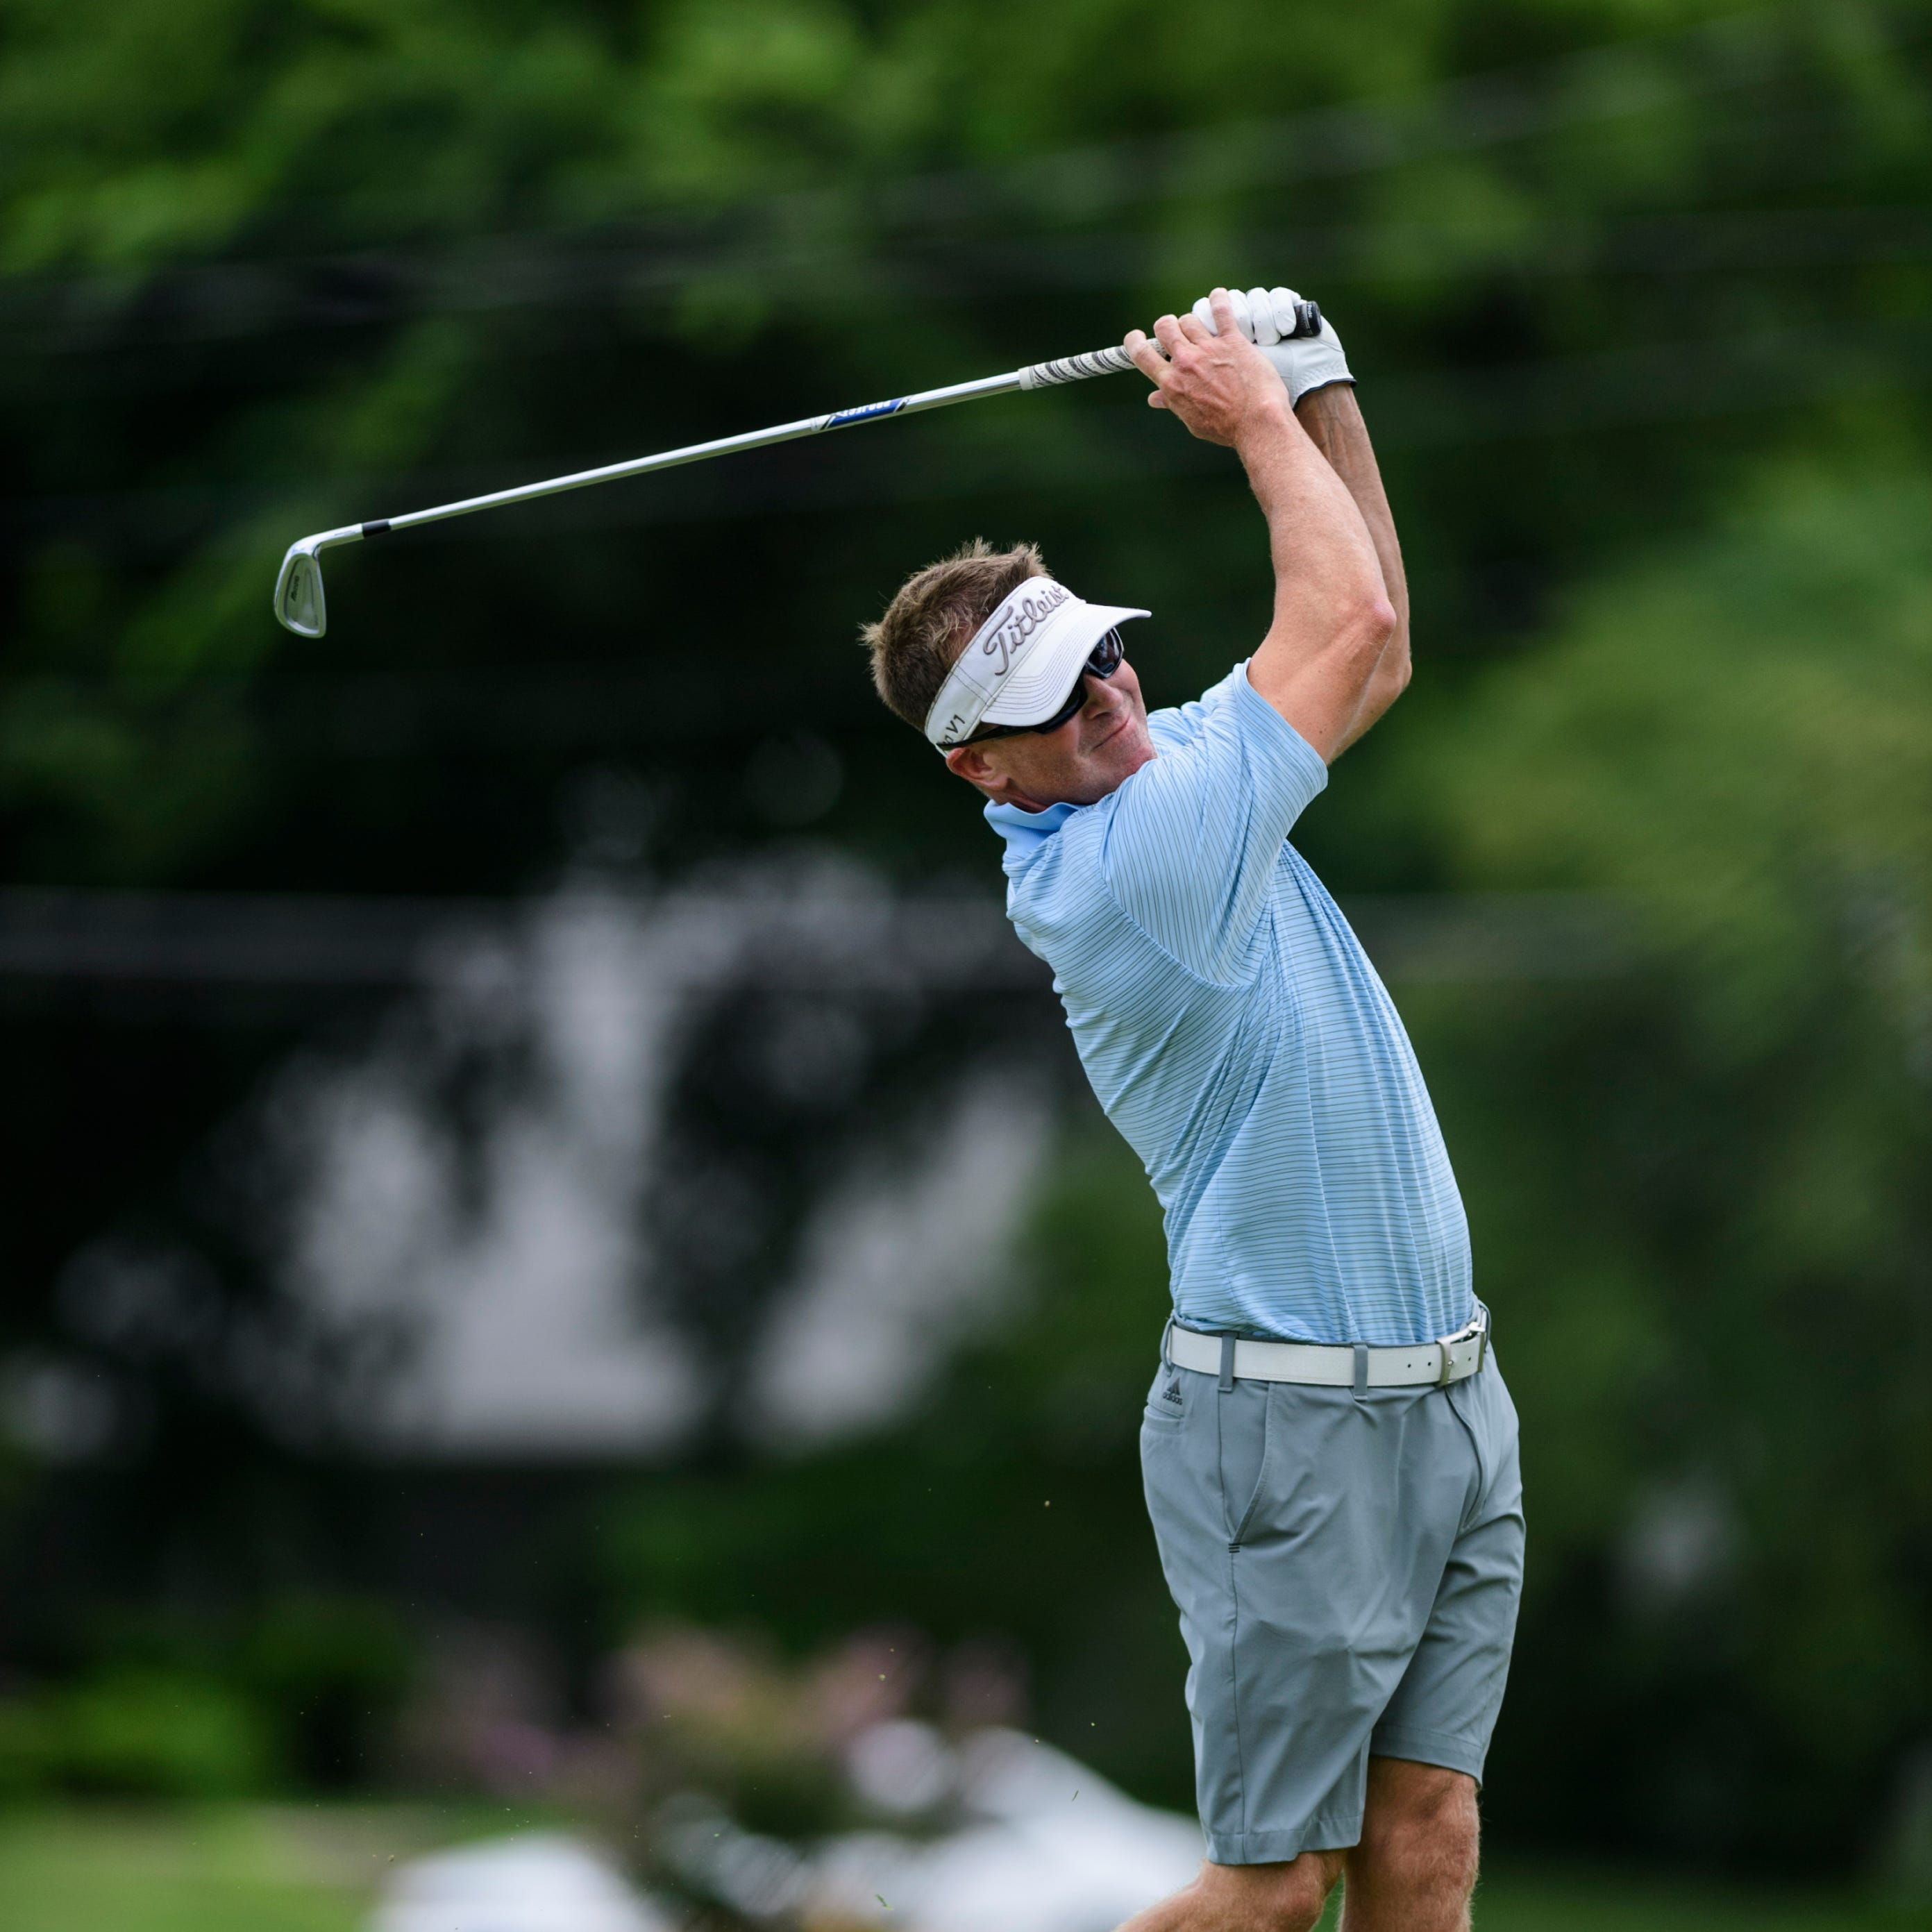 Andy Davis, Adam Grogan share first-round lead at Jace Bugg Men's City Tournament